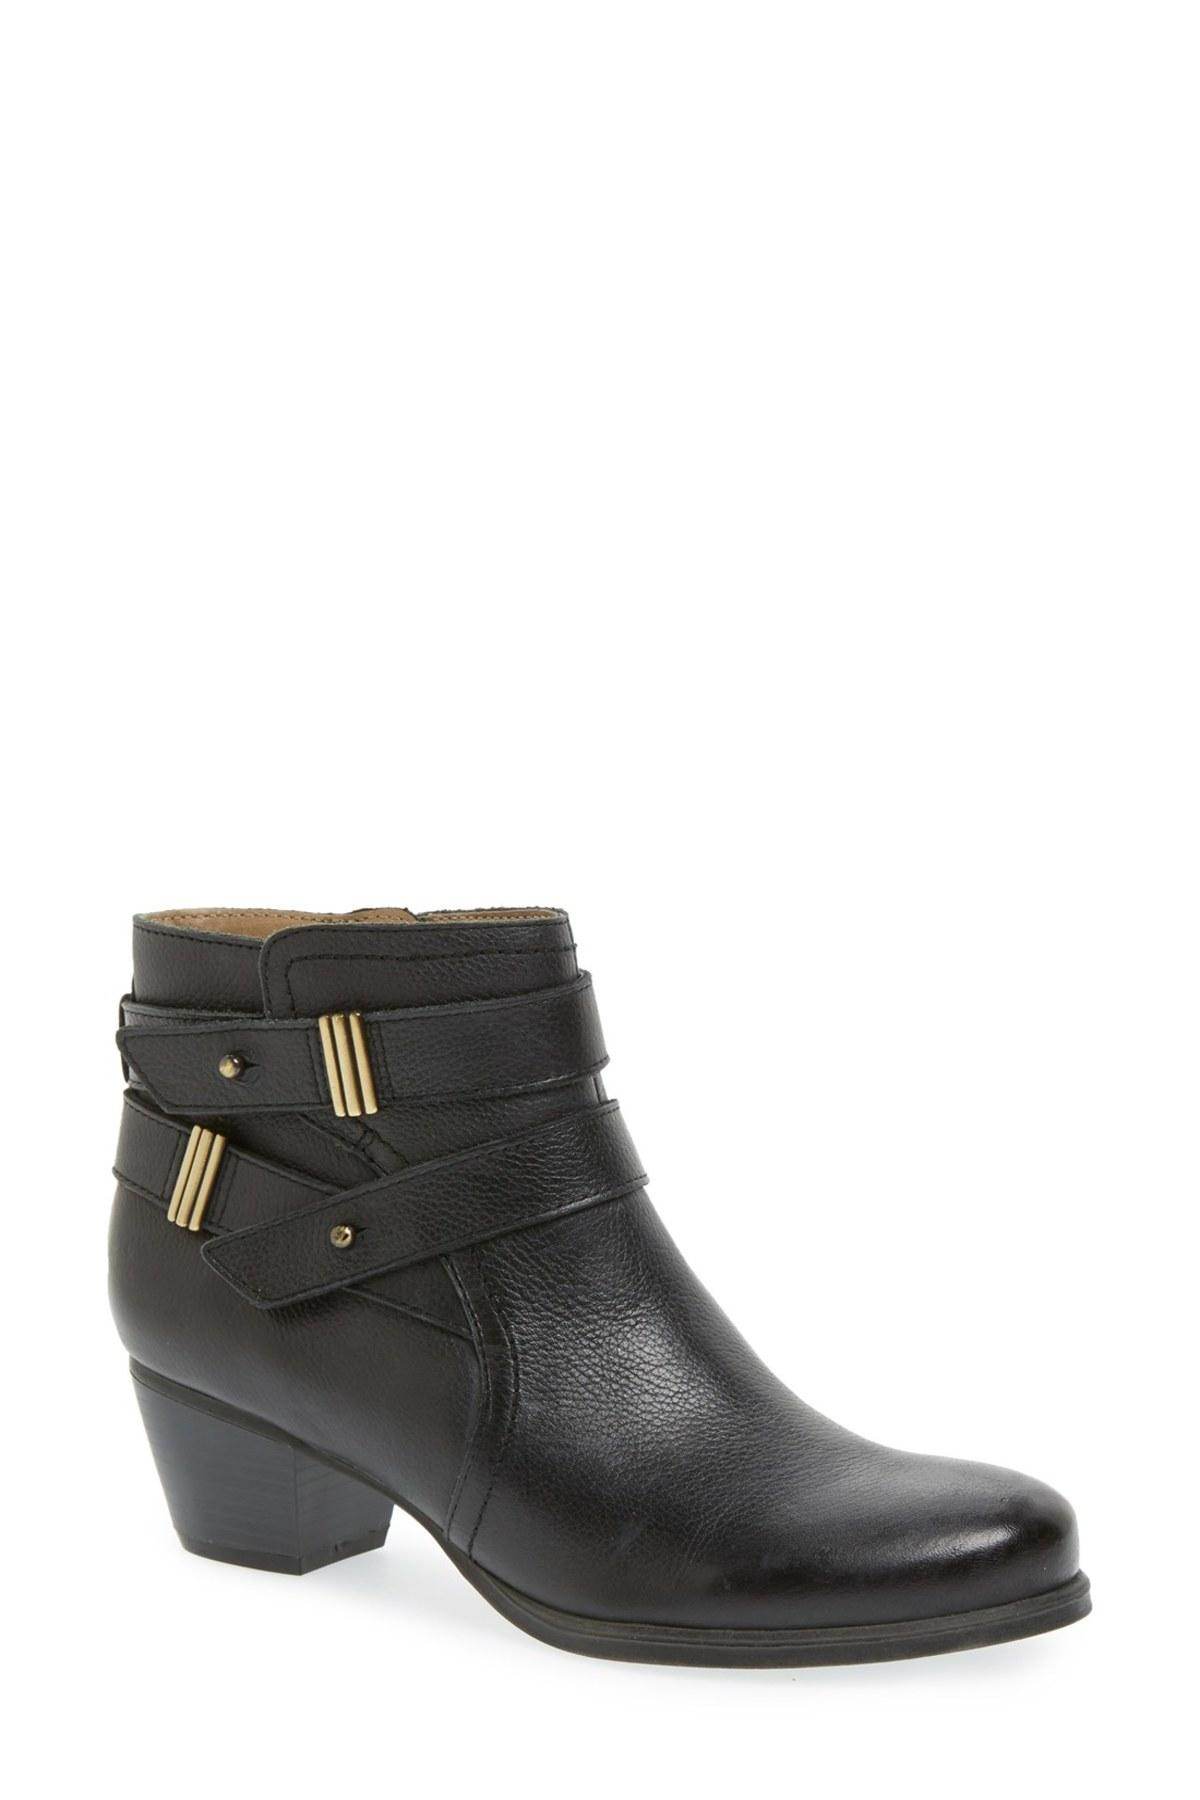 Naturalizer Womens Kepler Leather Closed Toe Ankle Fashion Boots by Naturalizer